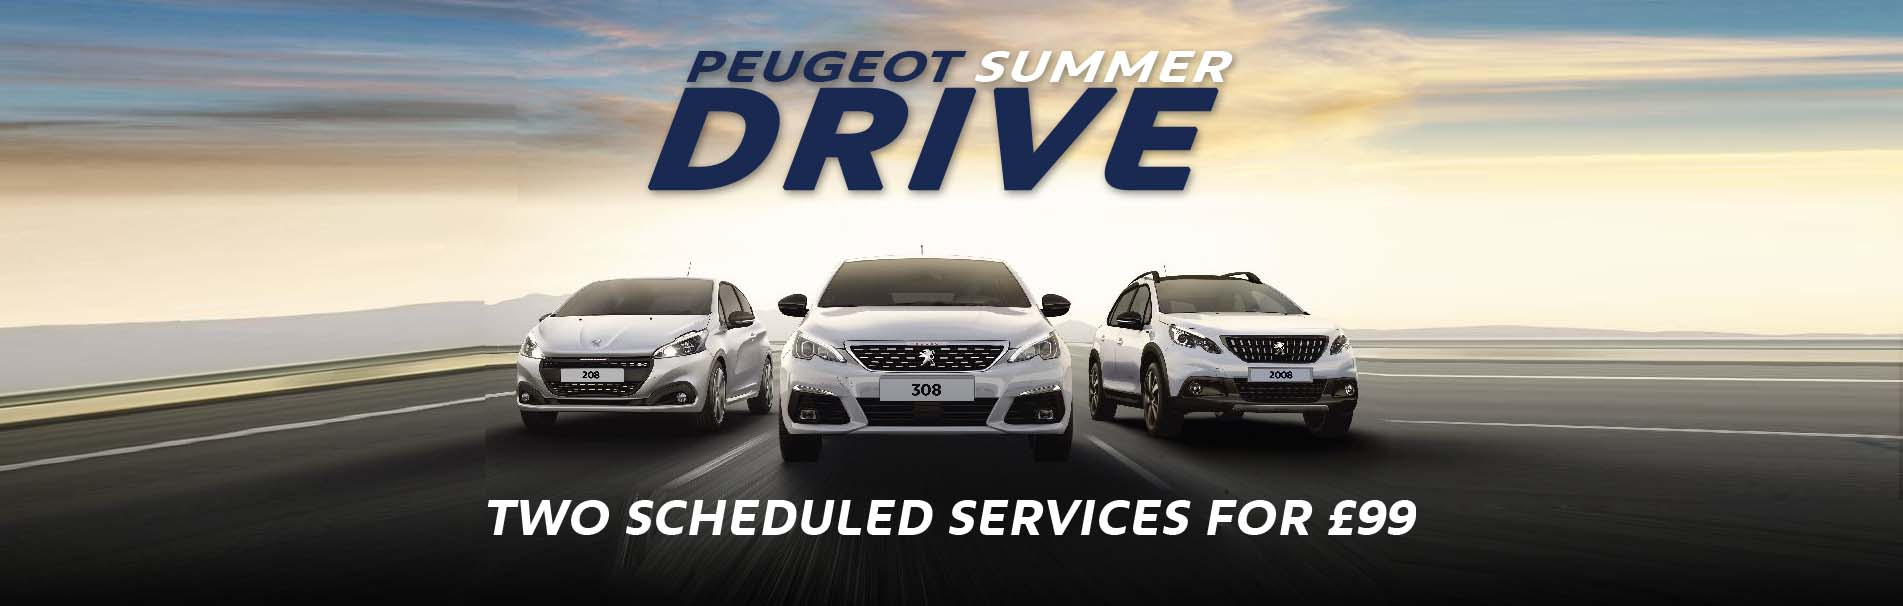 peugeot-summer-drive-2-scheduled-services-99-pounds-sli